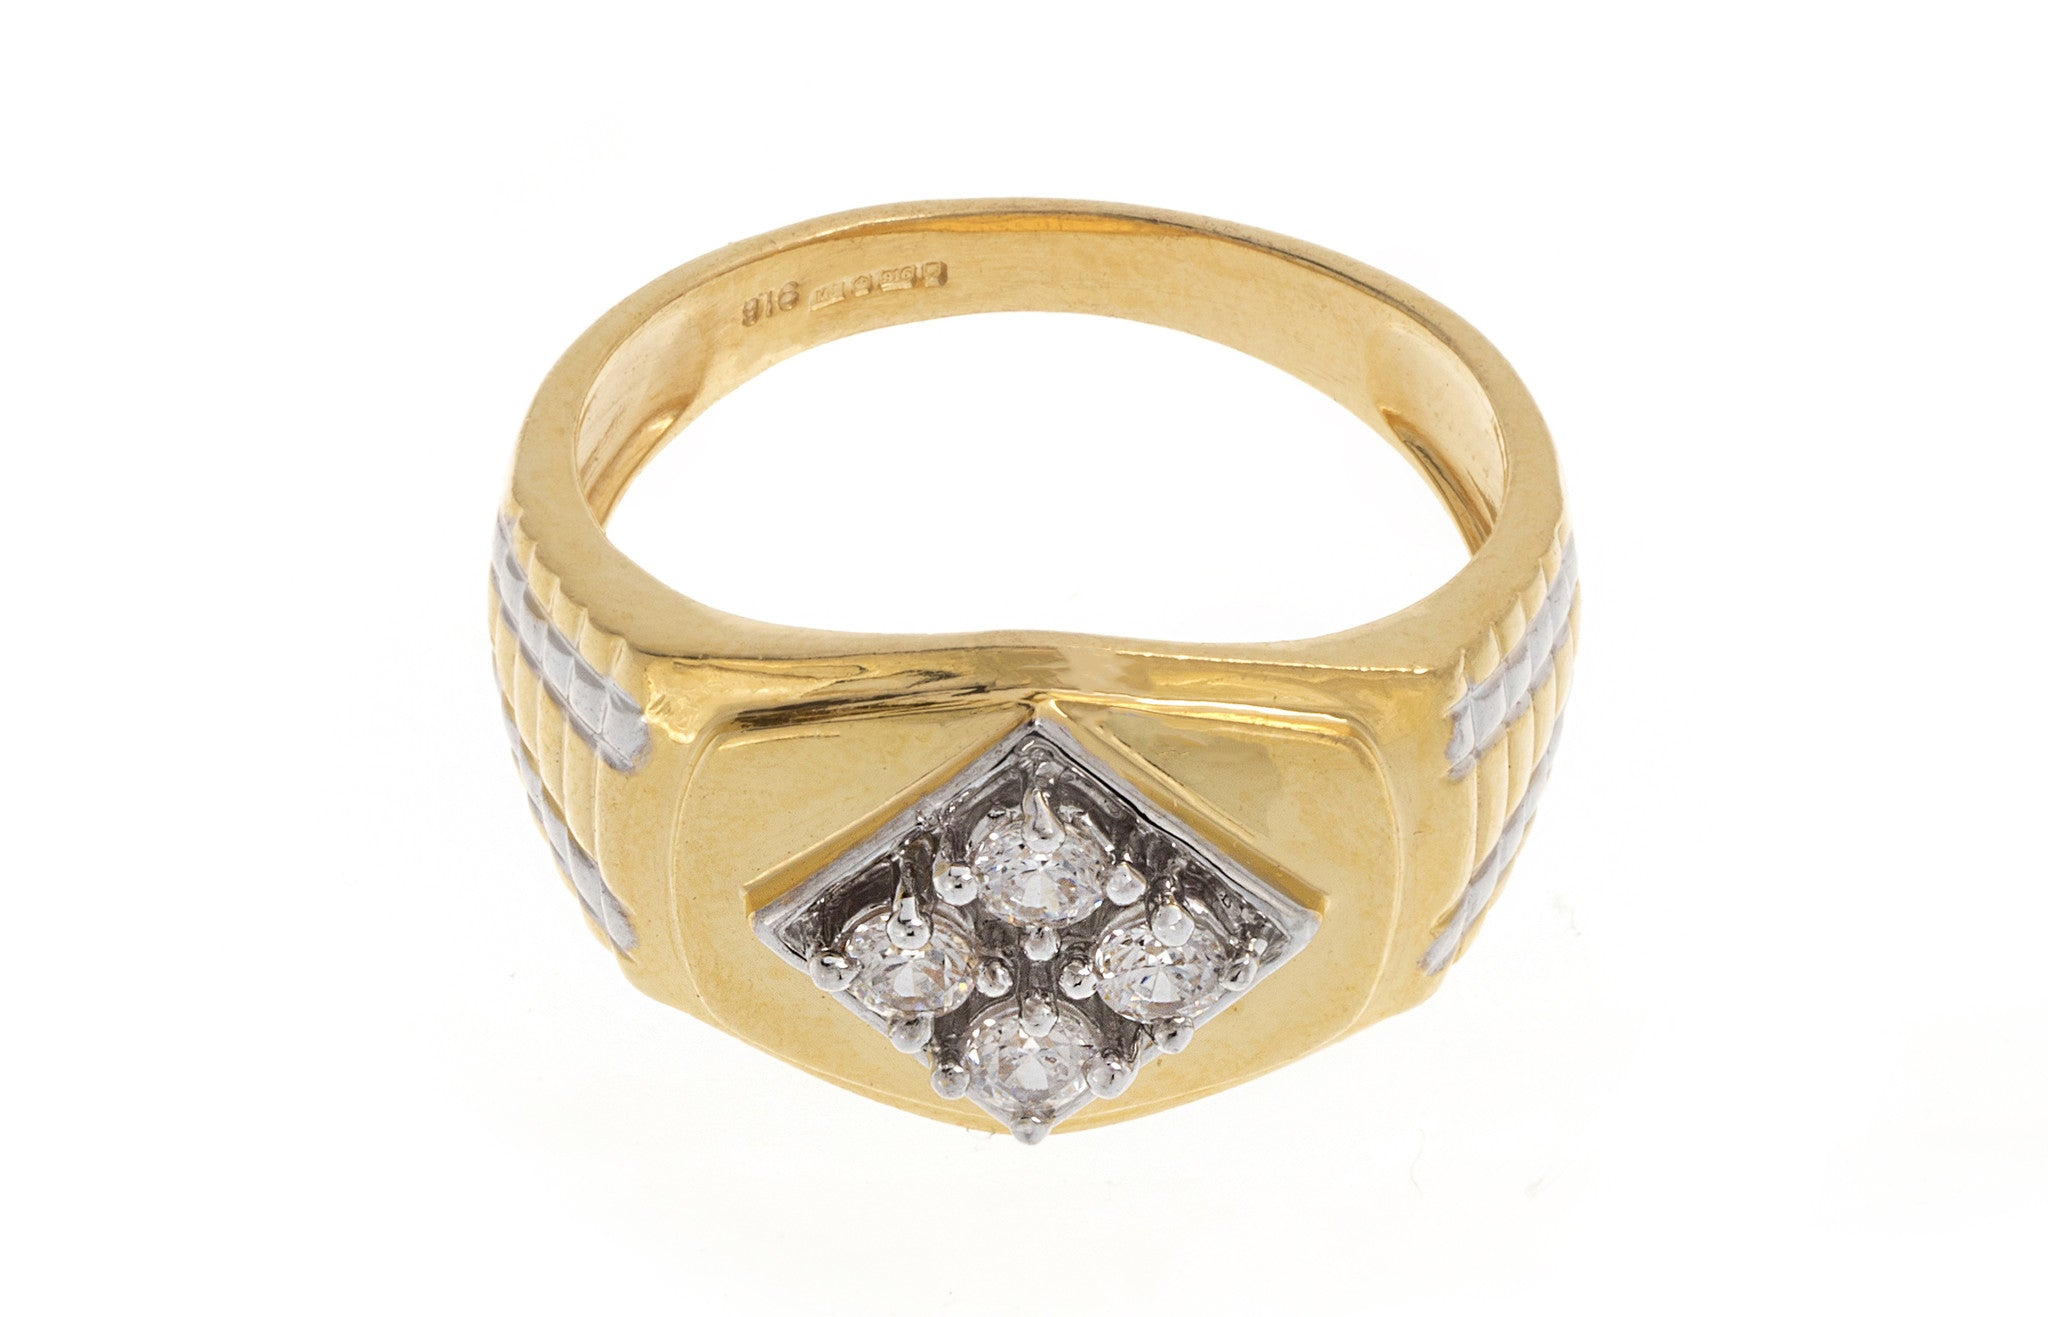 22ct Yellow Gold Cubic Zirconia Men's Ring, Minar Jewellers - 4